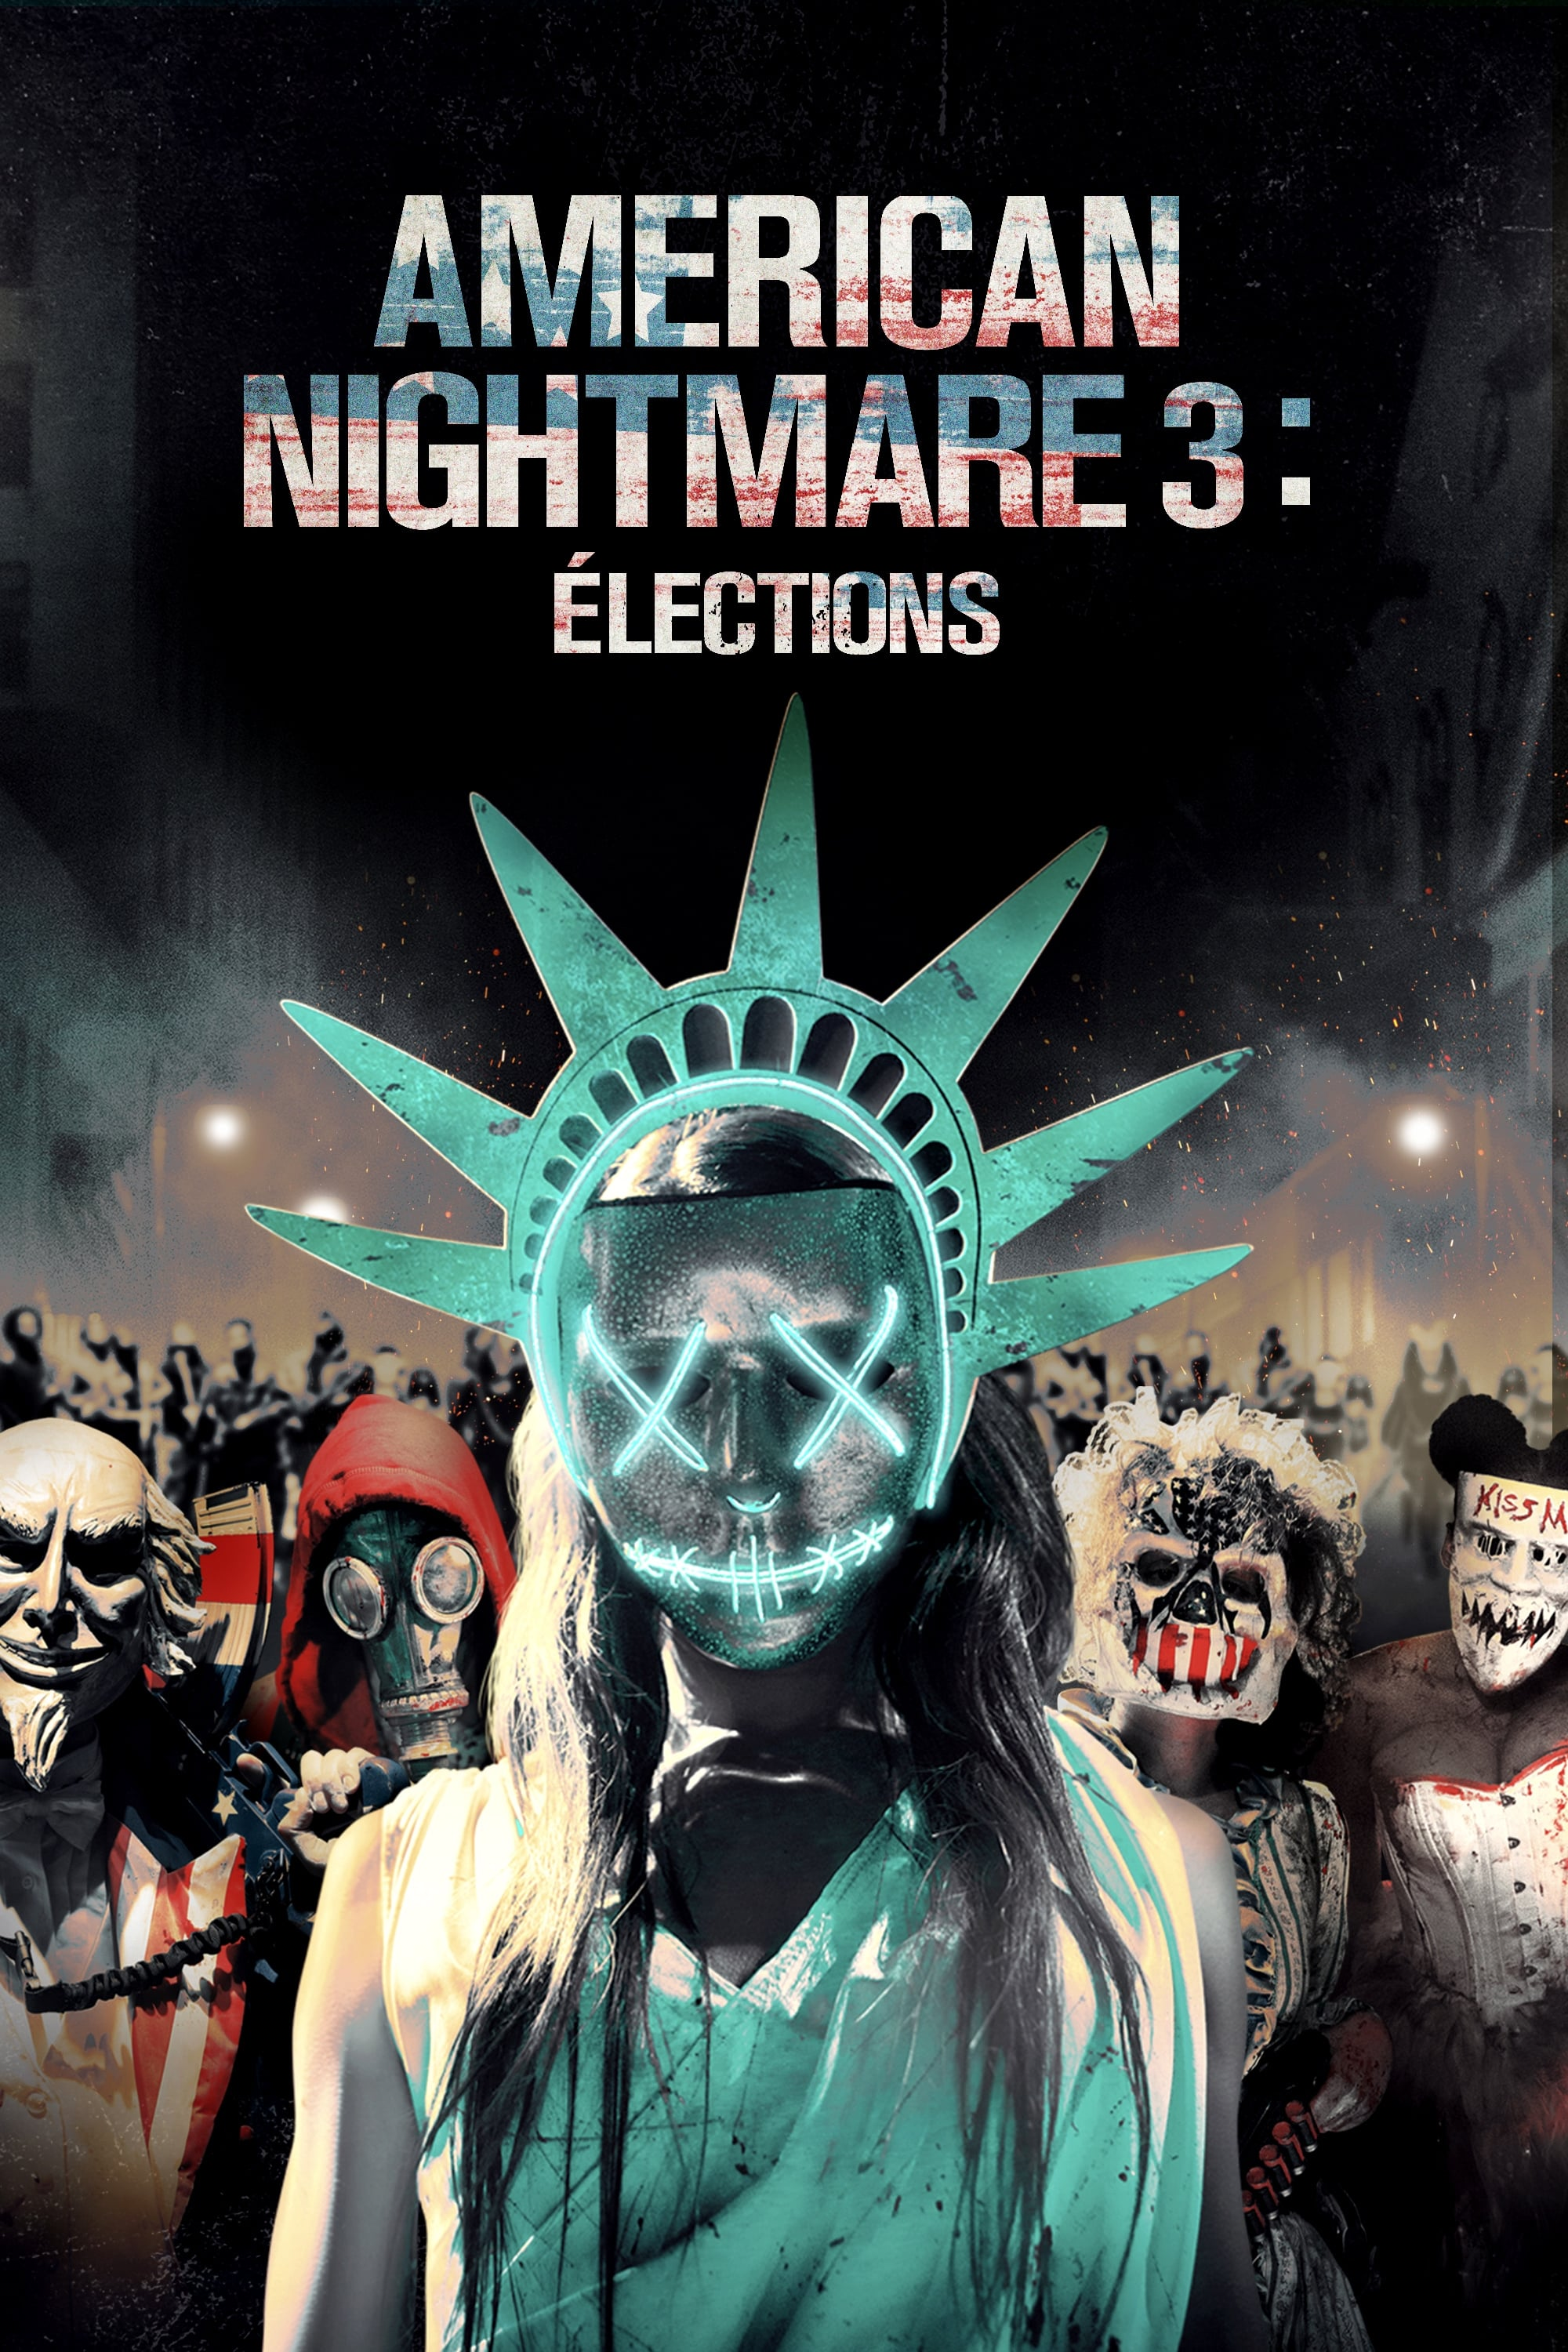 American-Nightmare-3-lections-La-Purge-LAnne-lectorale-2016-